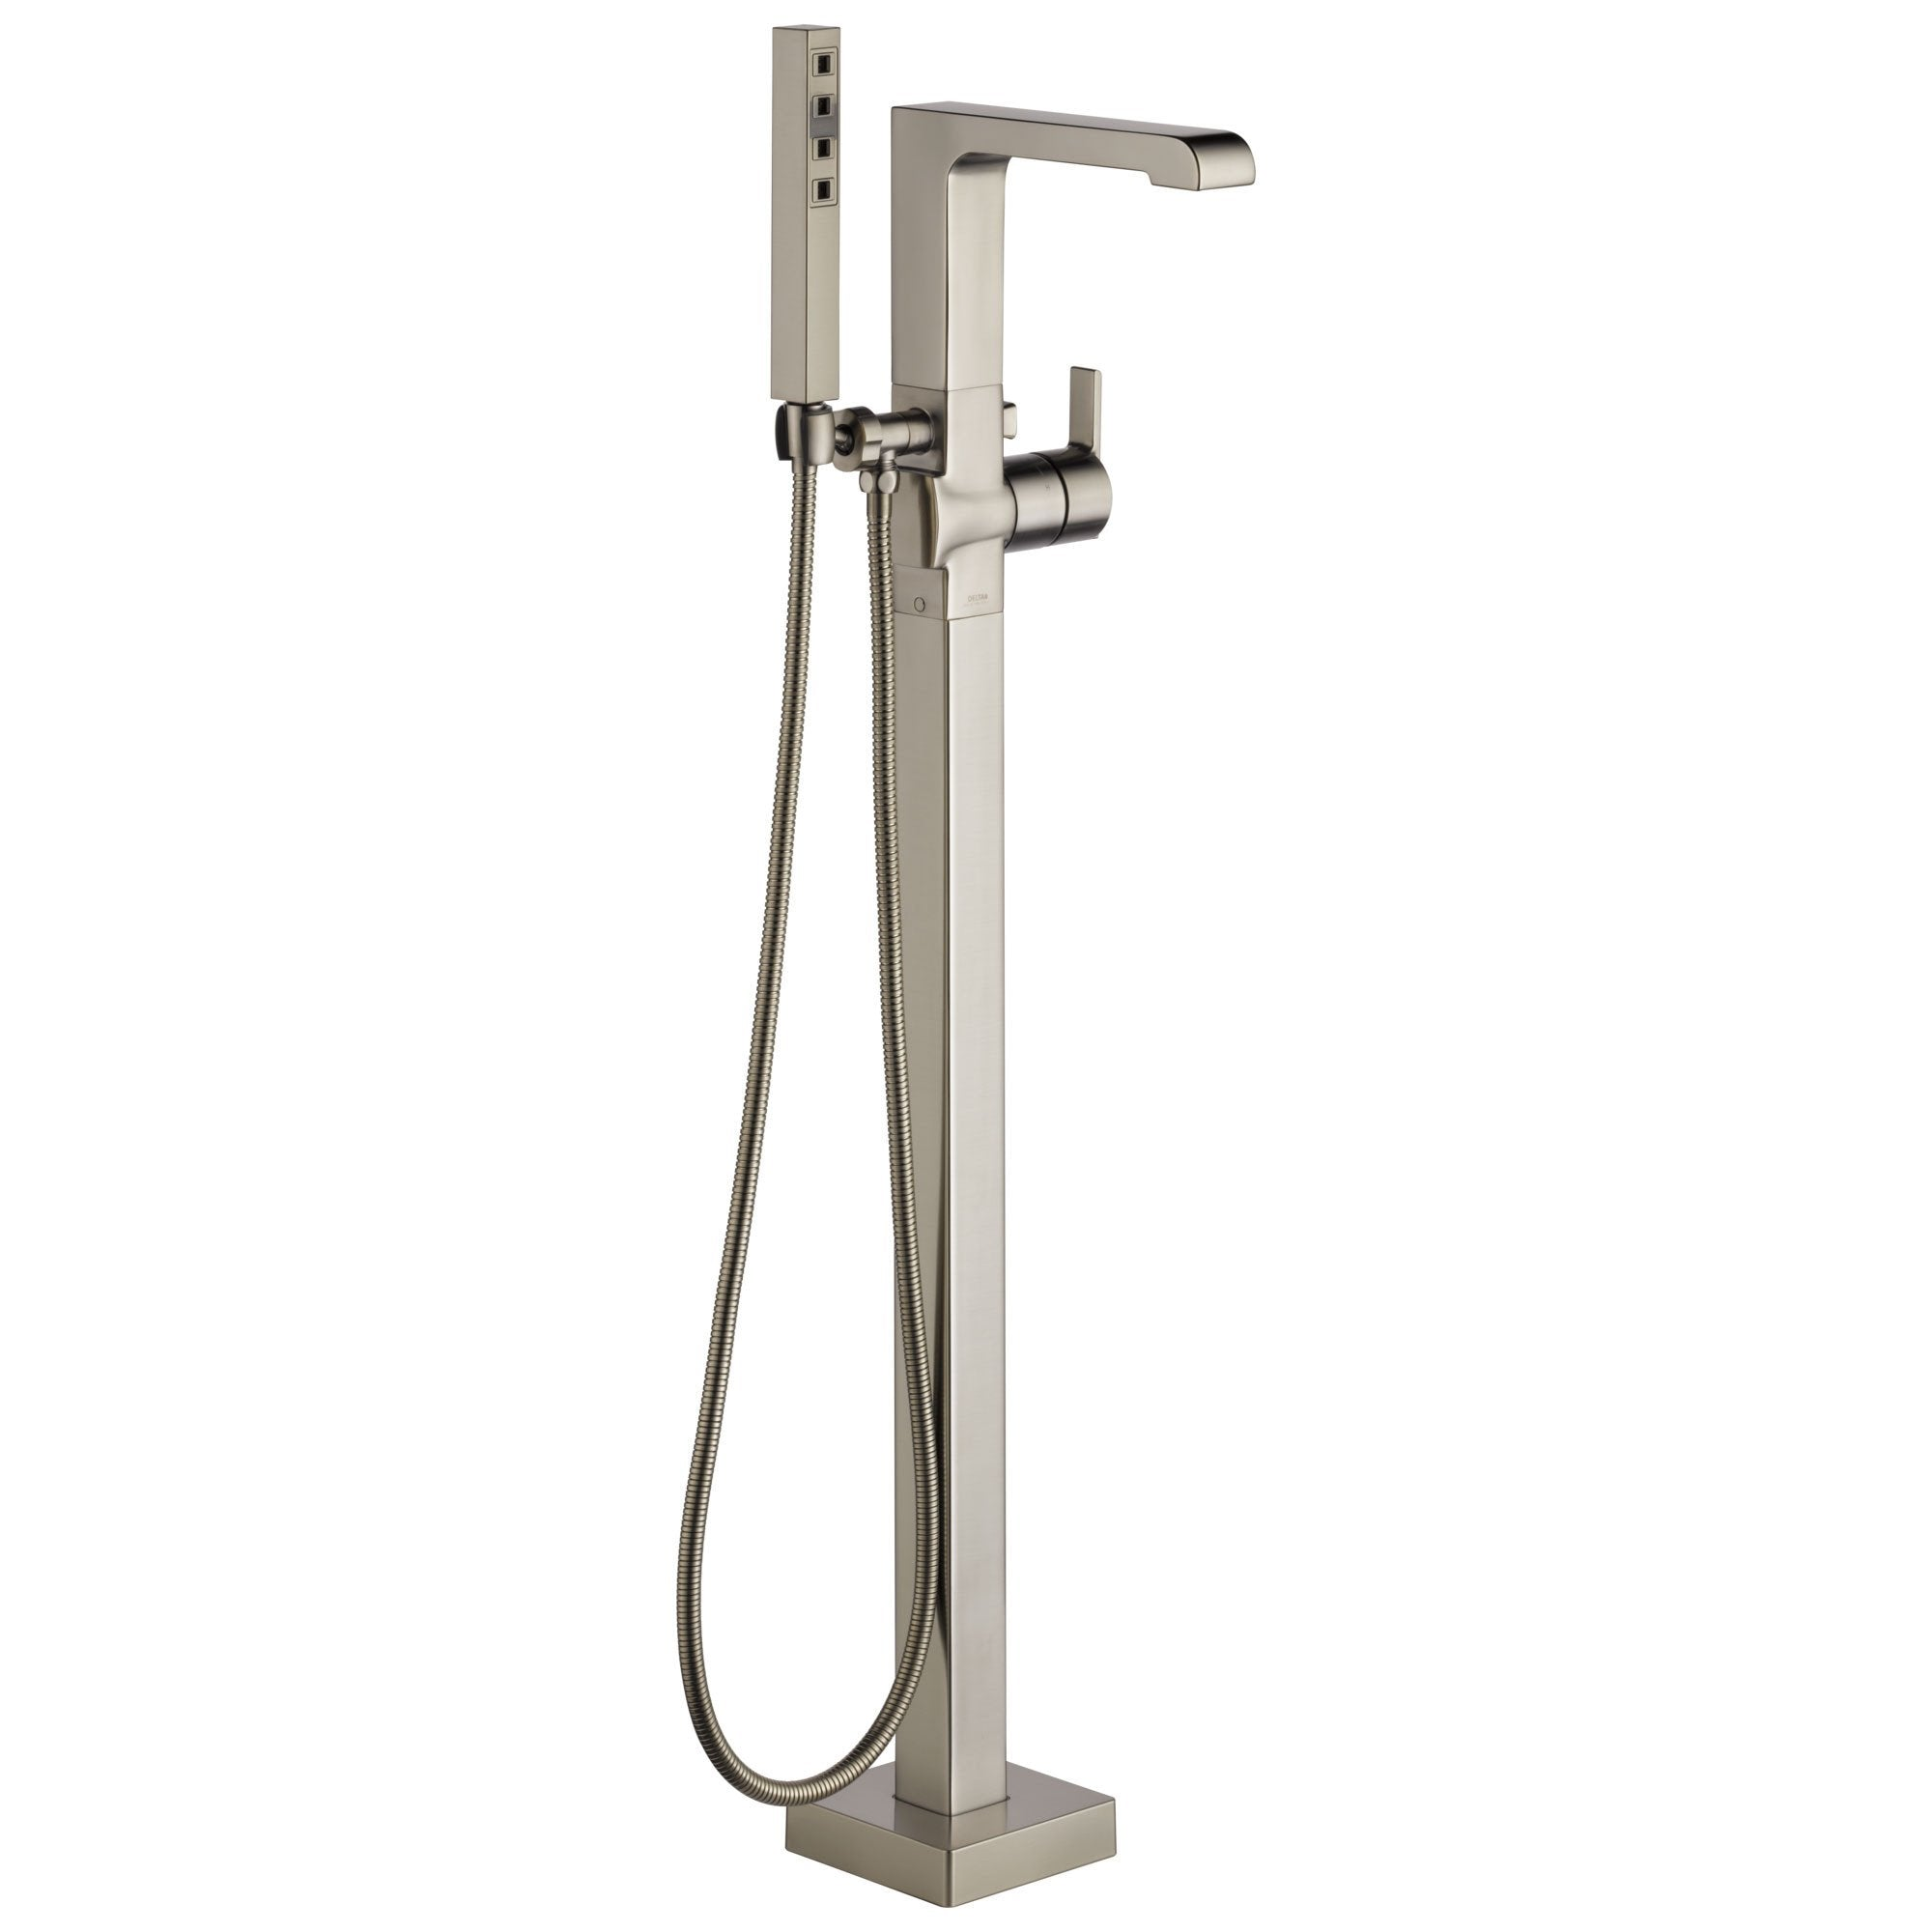 Delta Ara Collection Stainless Steel Finish Floor Mount Freestanding Tub Filler Faucet with Hand Shower Trim only (Requires Valve) DT4767SSFL